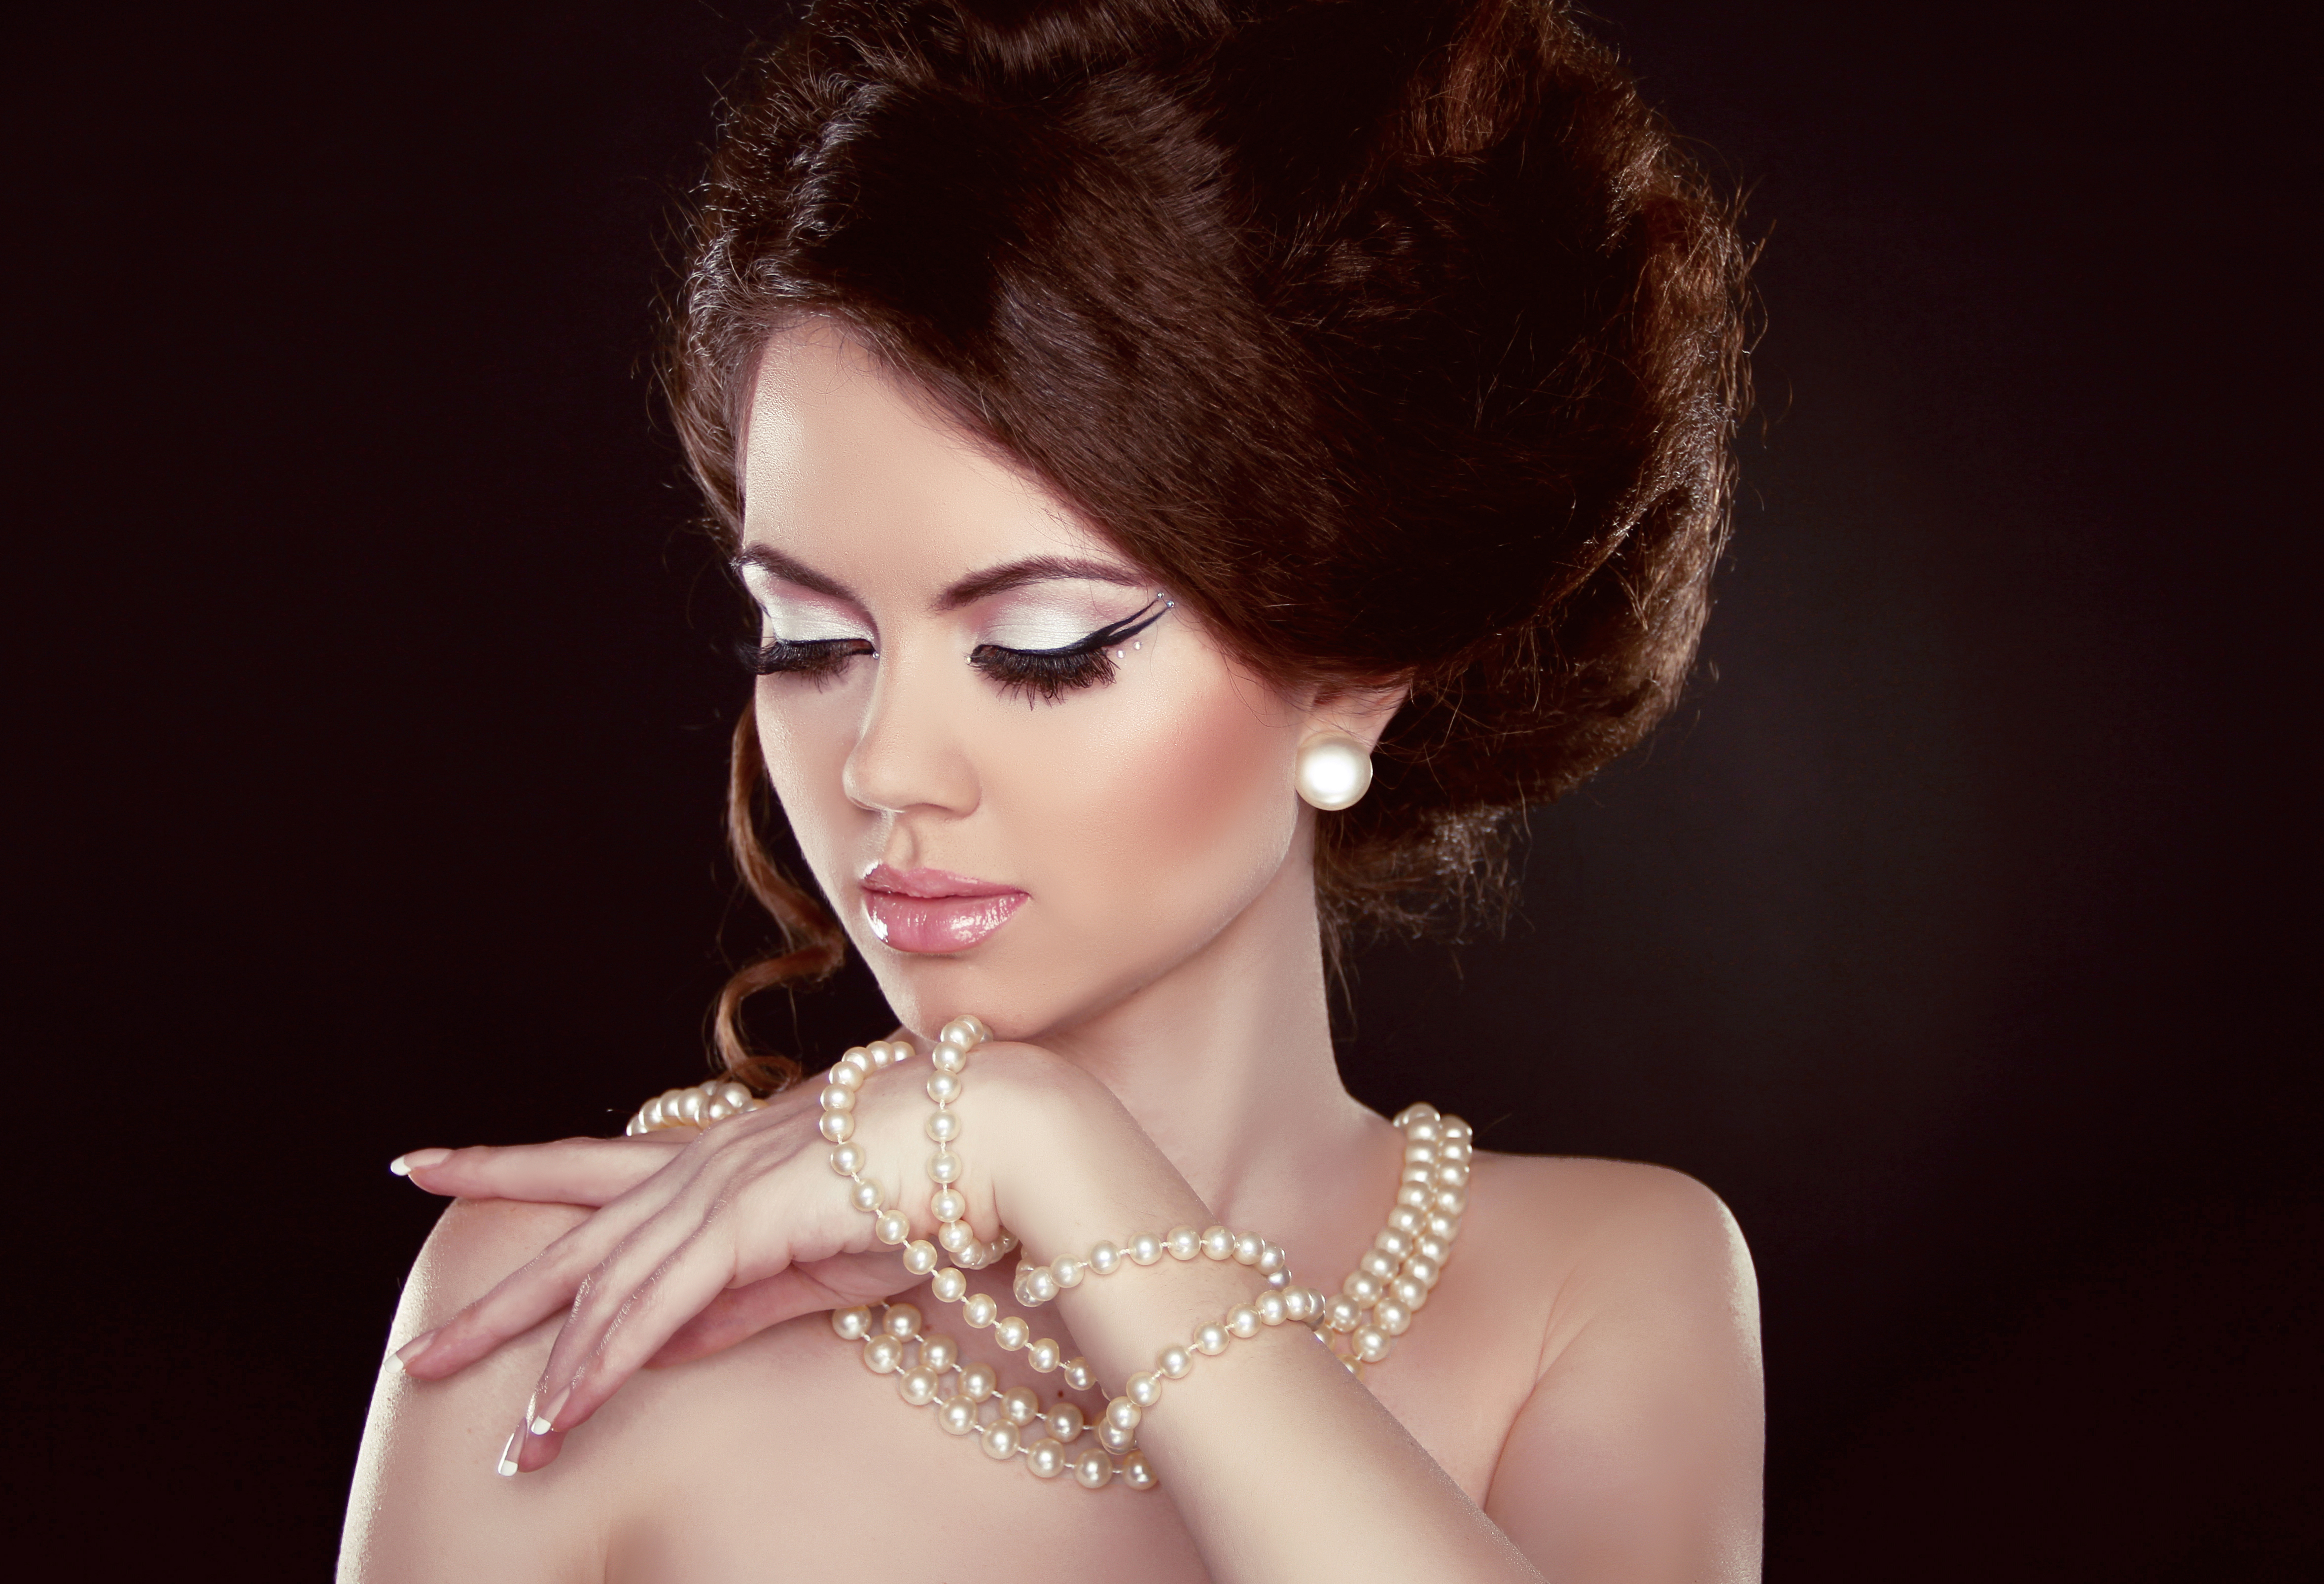 Return To The Classic First: Timeless Pearl Jewelry And A Few Makeup  Accents